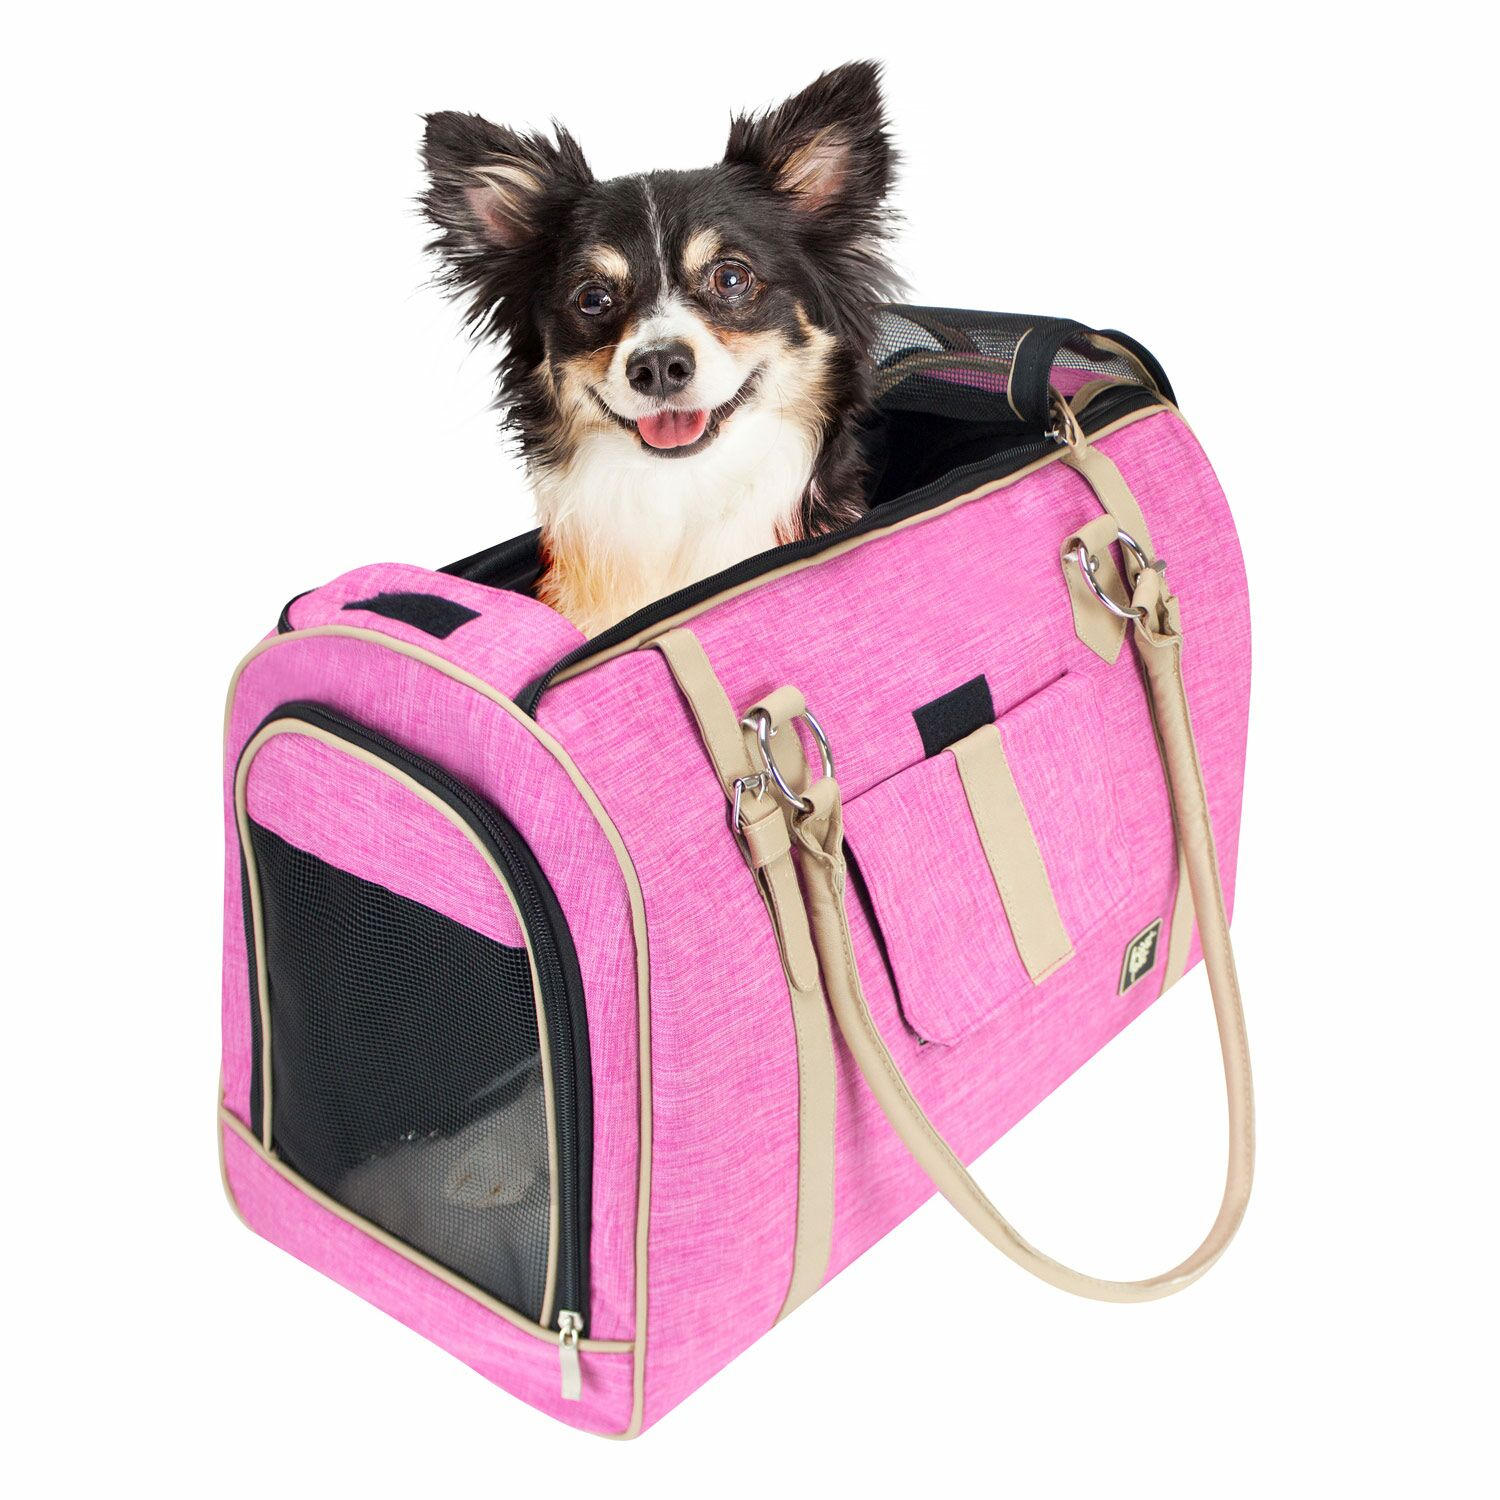 Heyman Soft Airline Approved Stylish Pet Carrier Size: 13